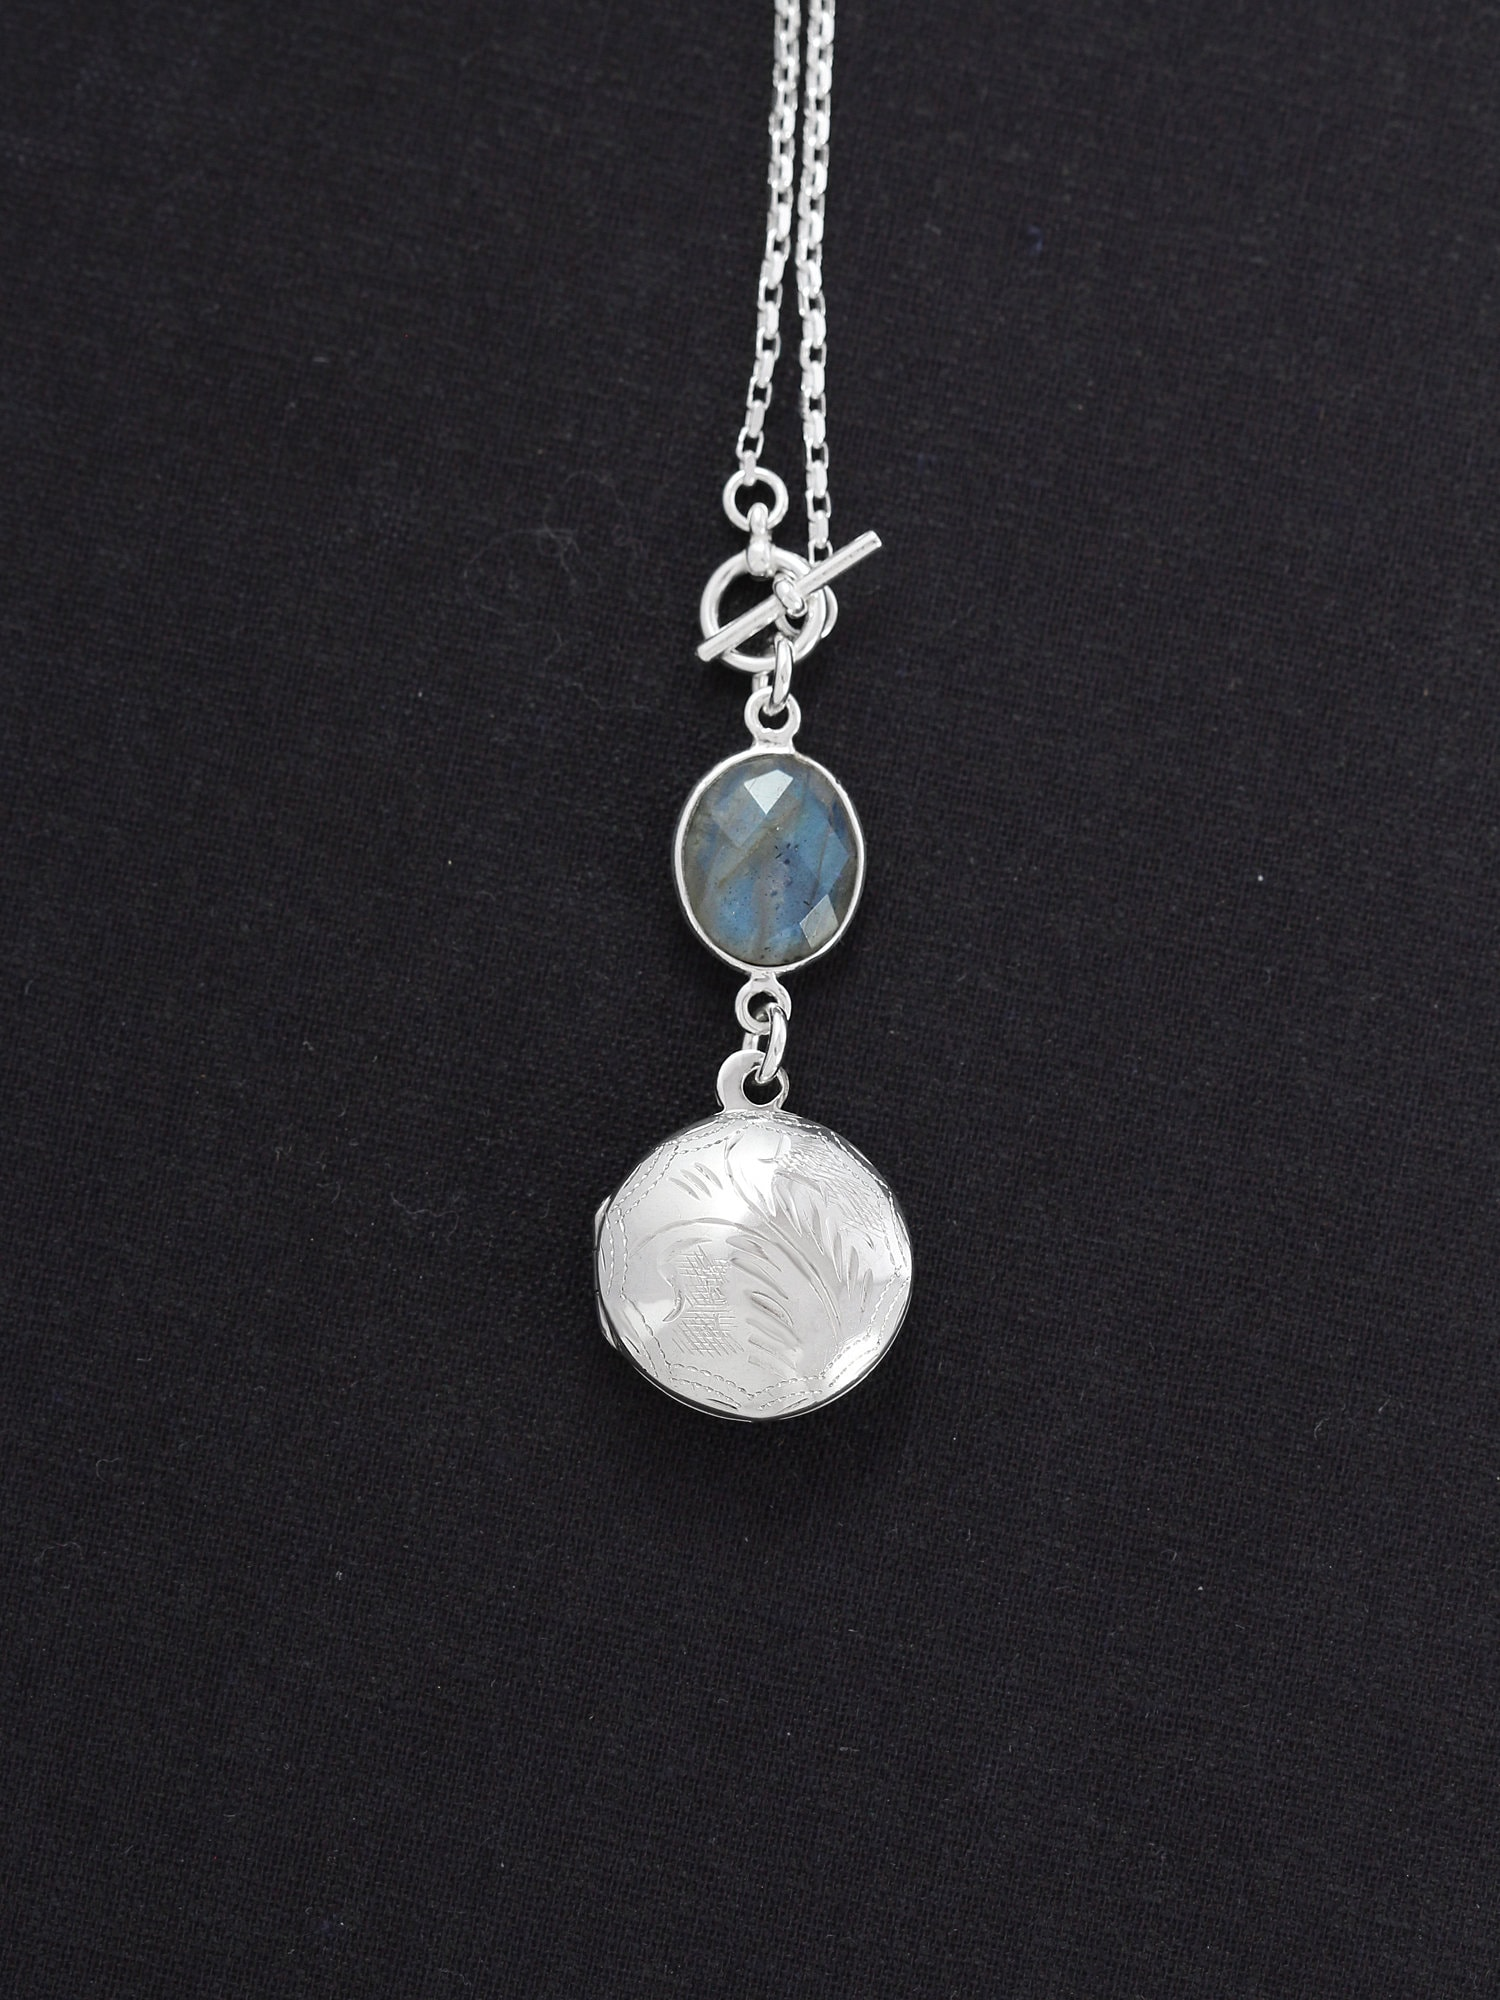 e424adbbaafbe Sterling Silver Labradorite Locket Necklace, Long Chain with Lariat ...